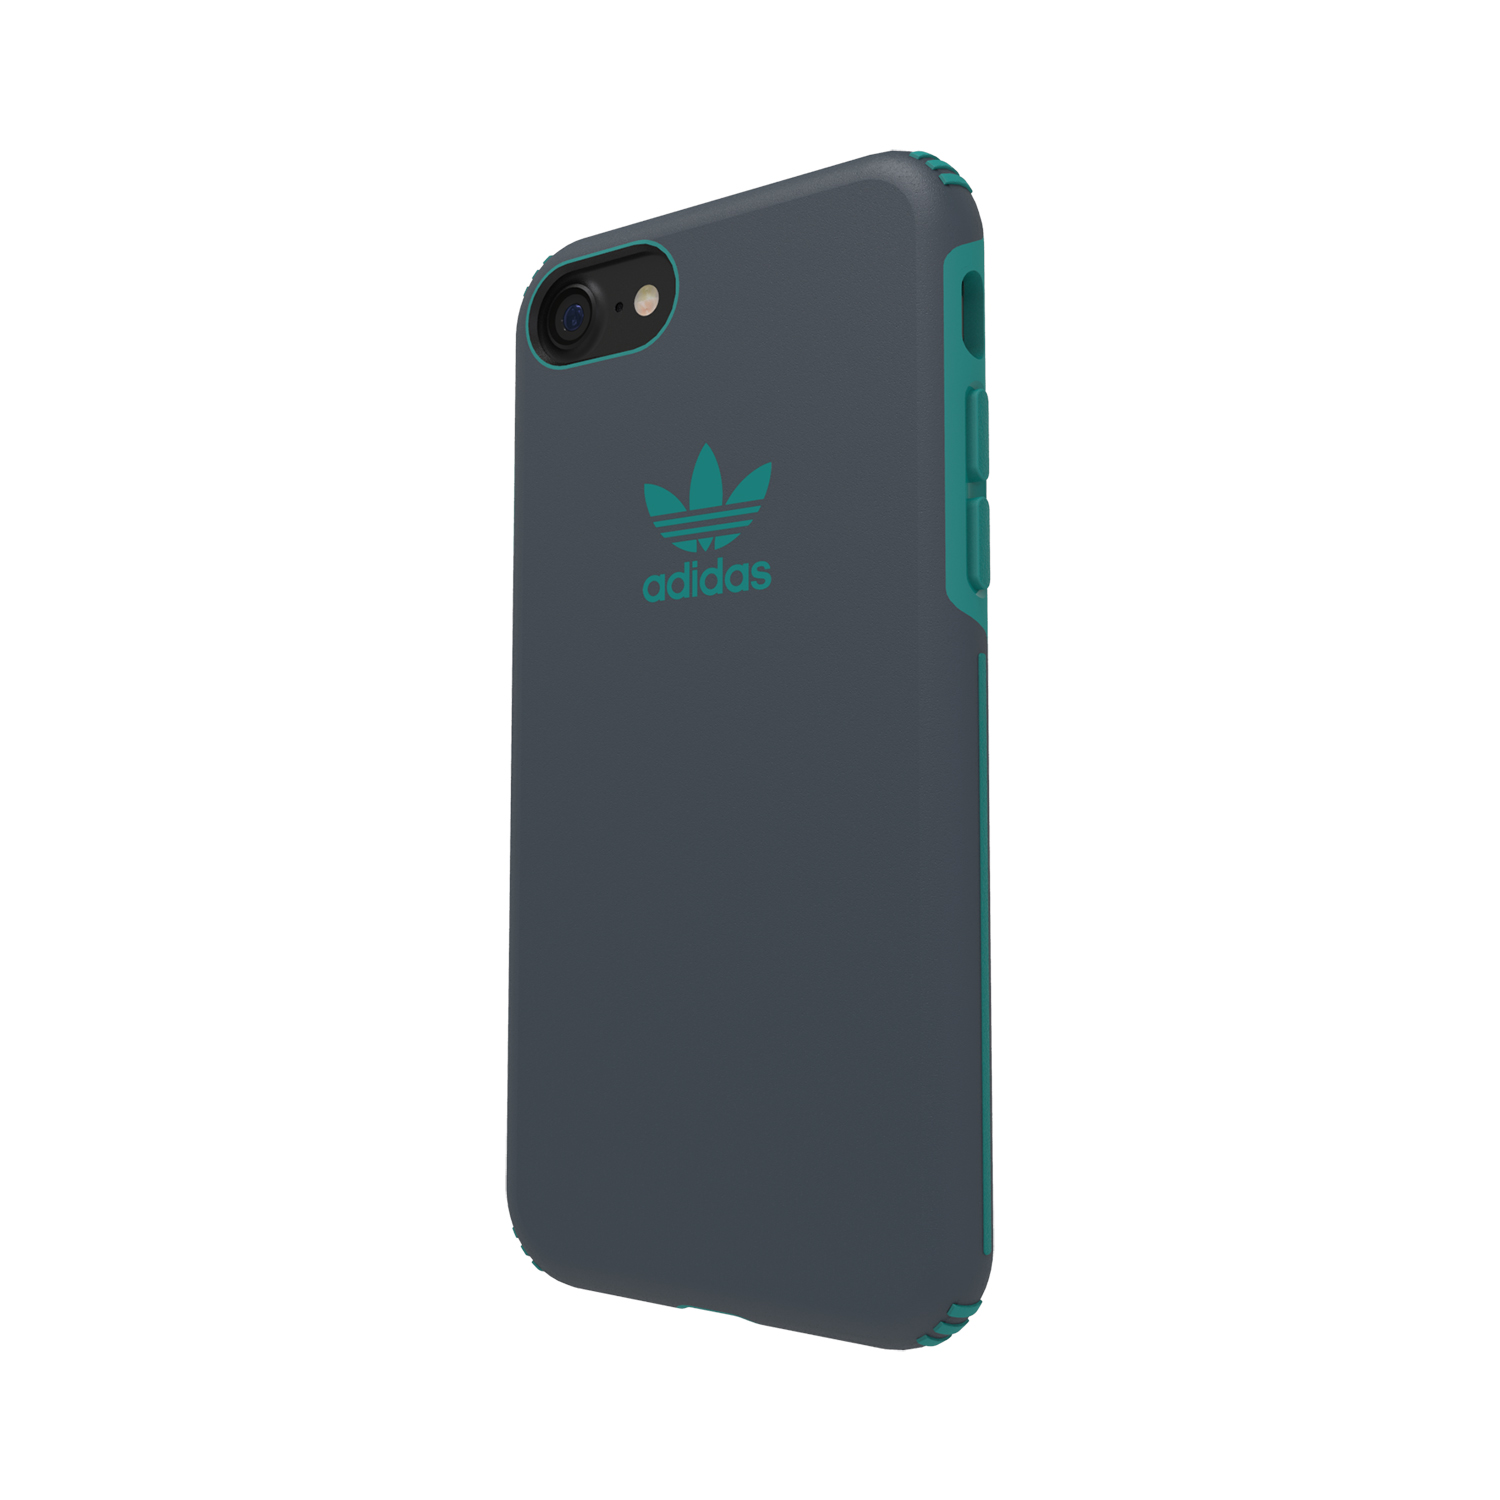 the latest iphone adidas cover rugged green for apple iphone 7 13097